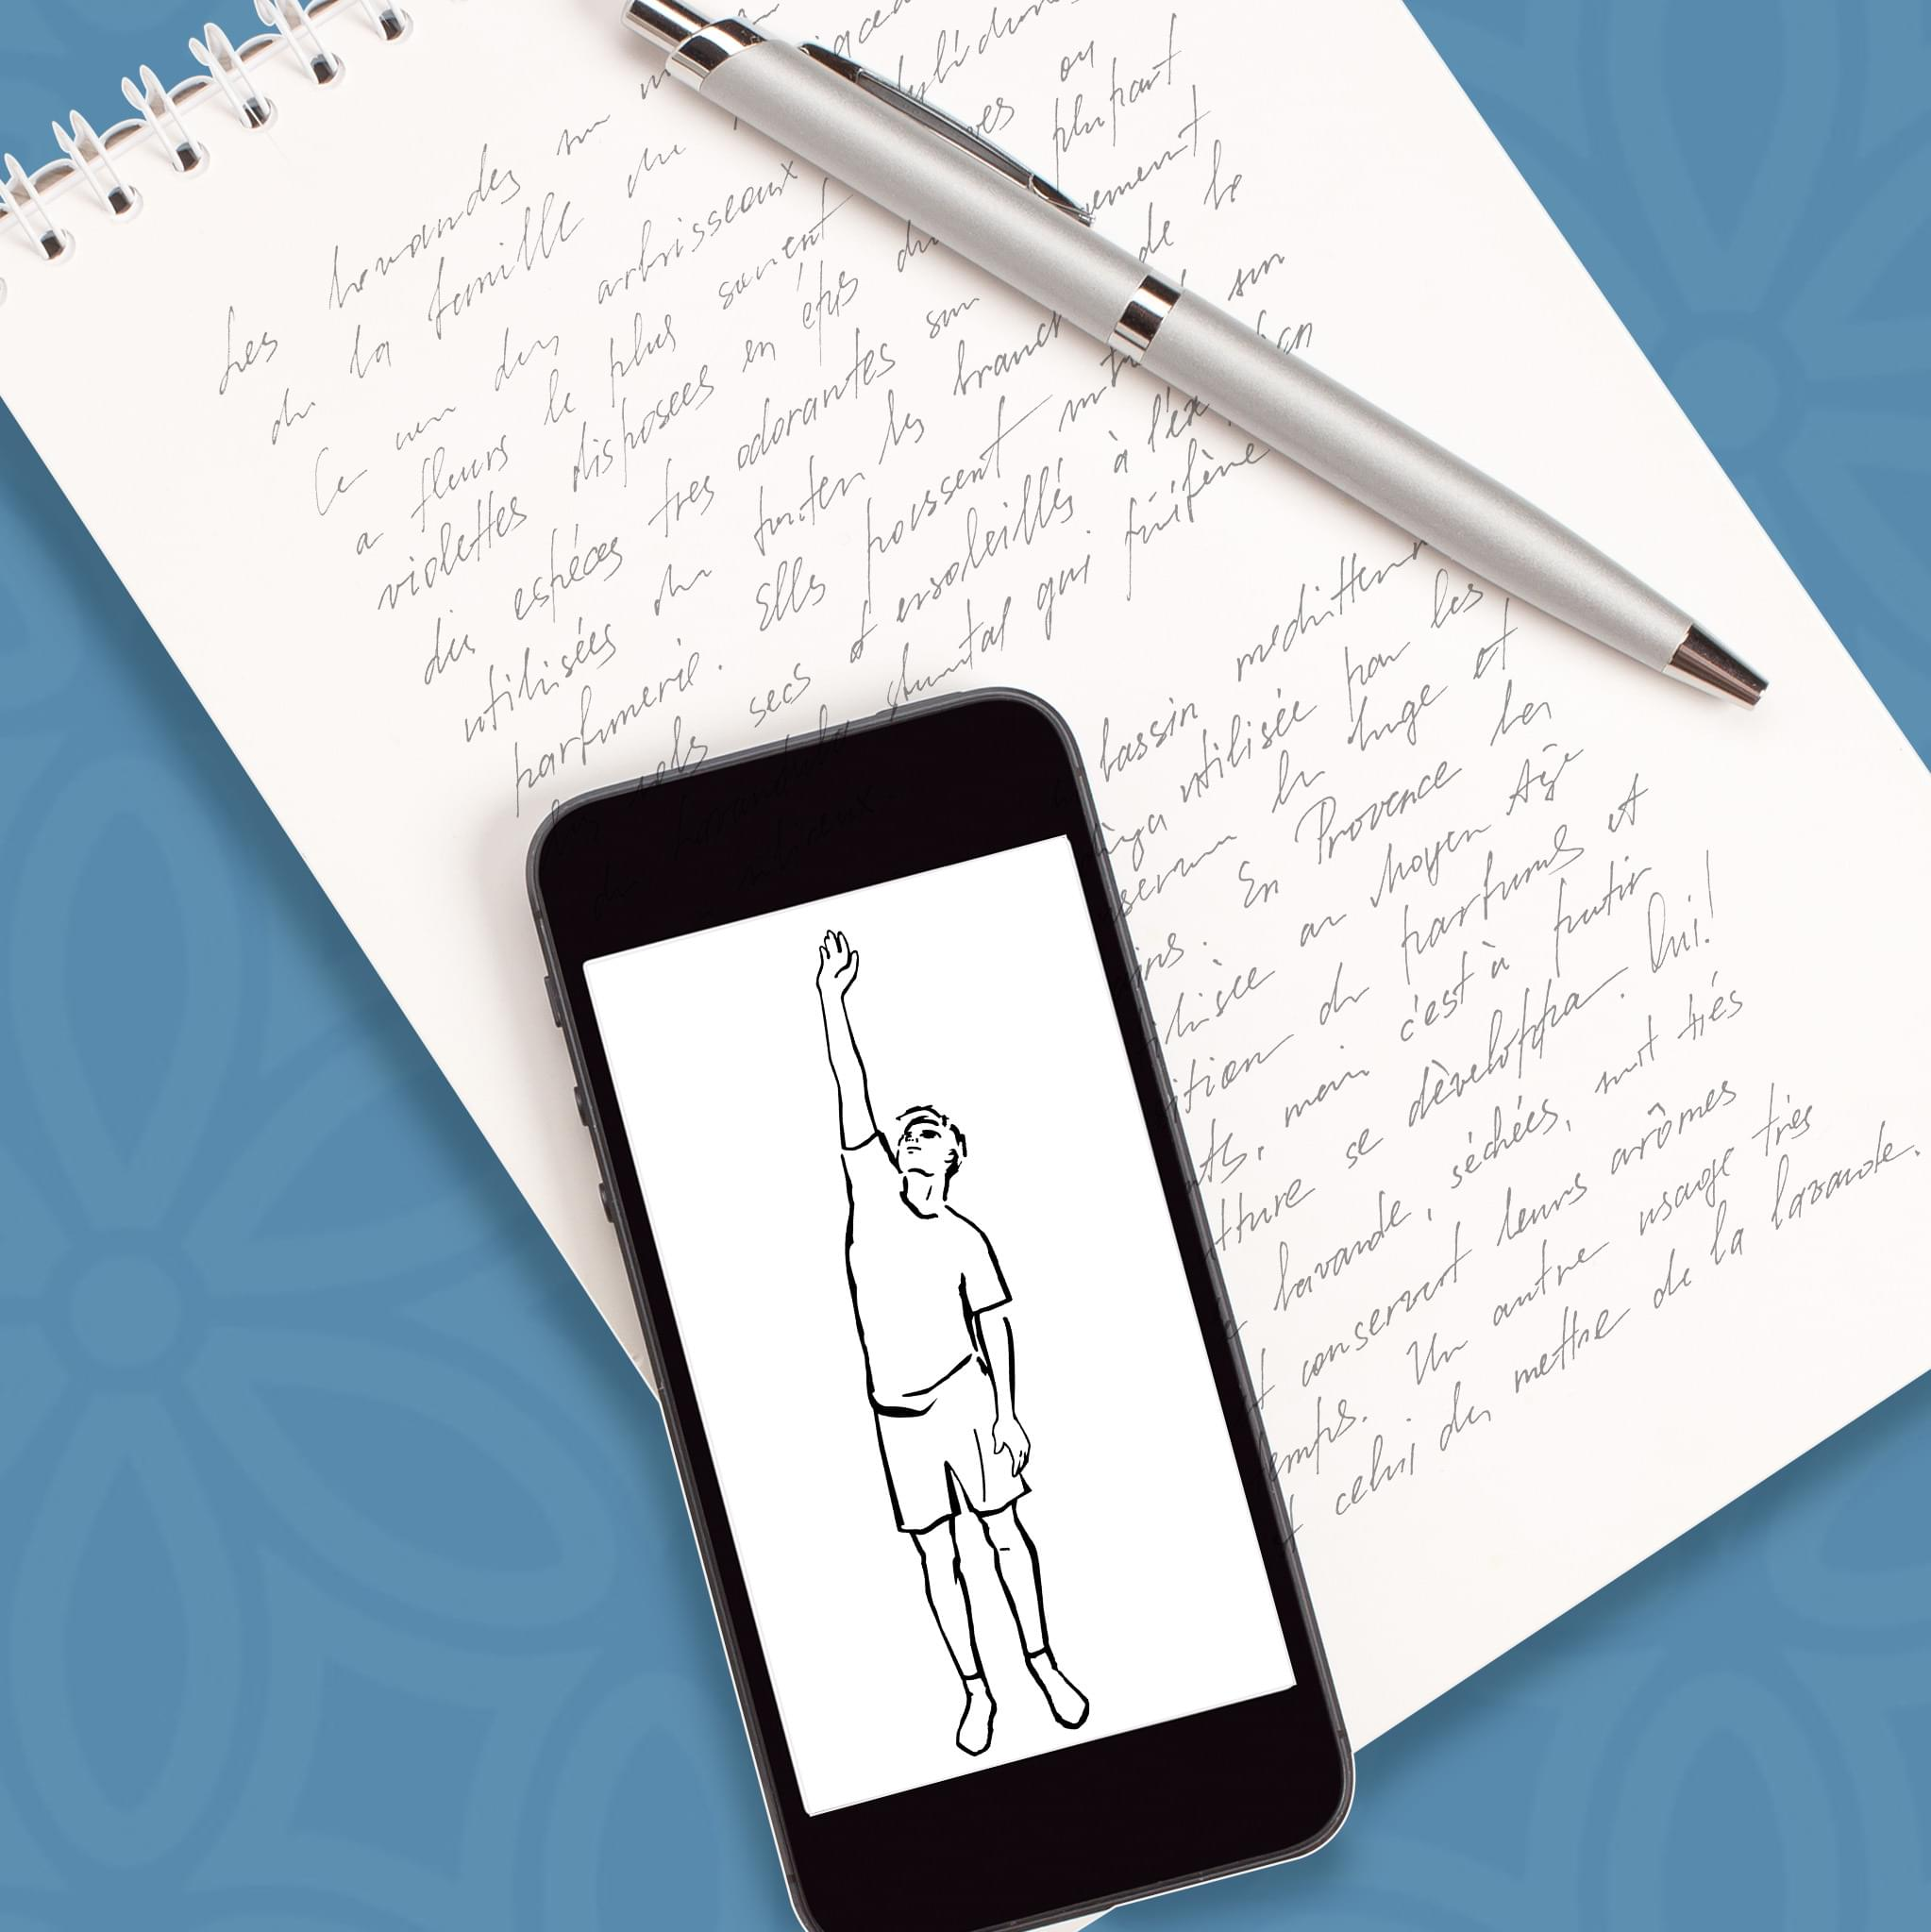 Writing and iPhone device with yoga pose